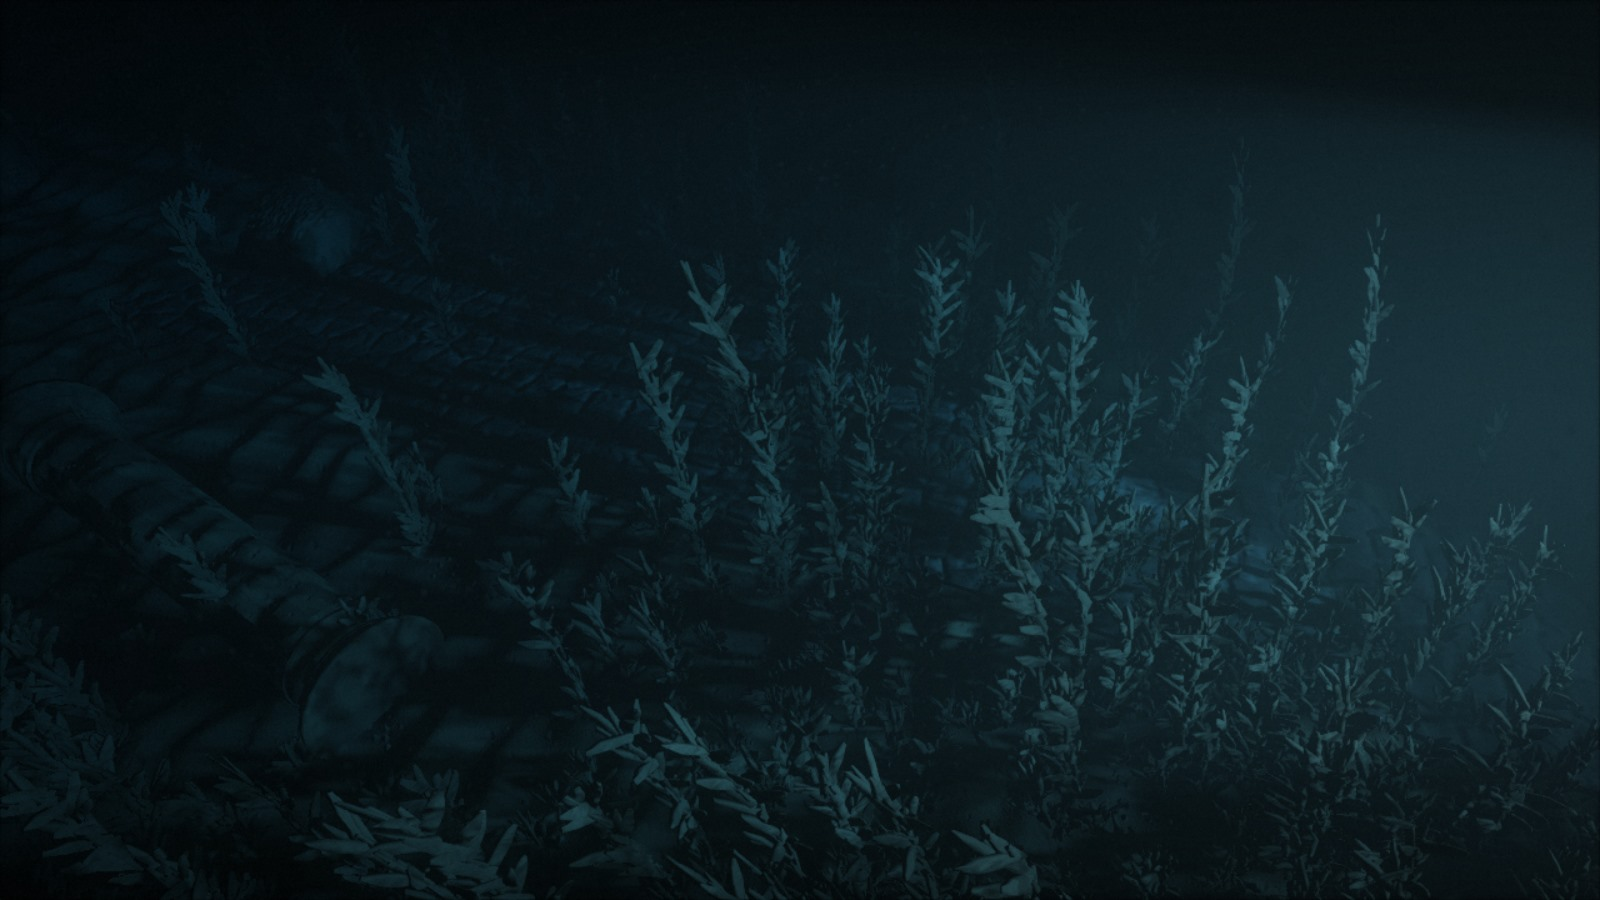 Underwater vegetation